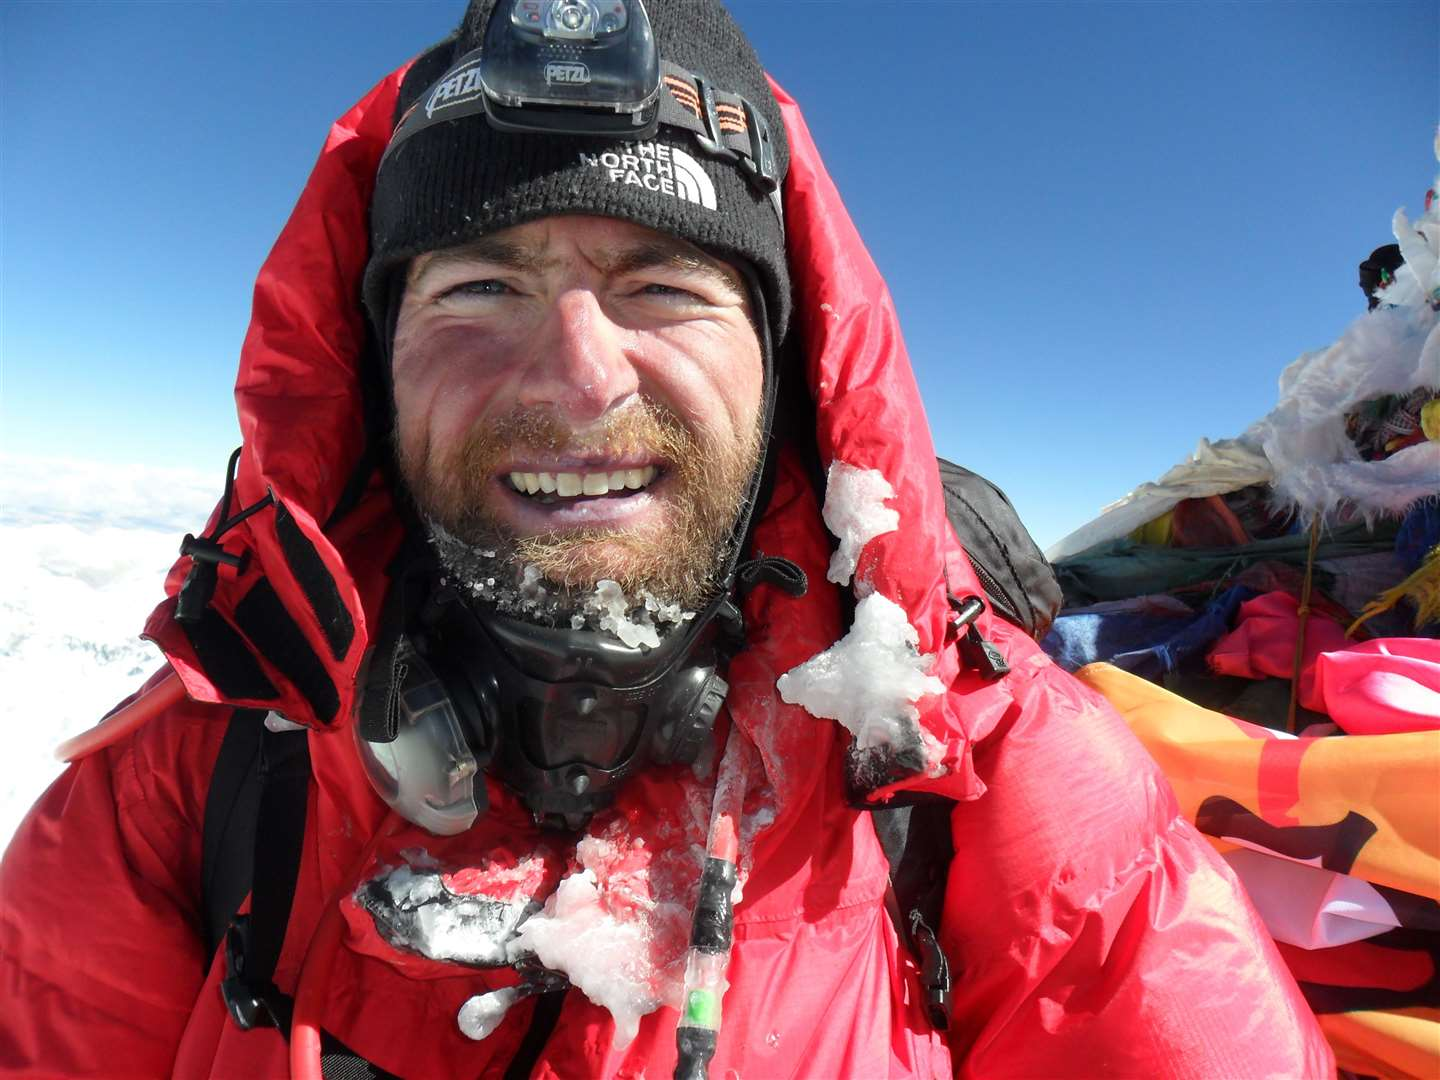 James Ketchell has climbed Everest